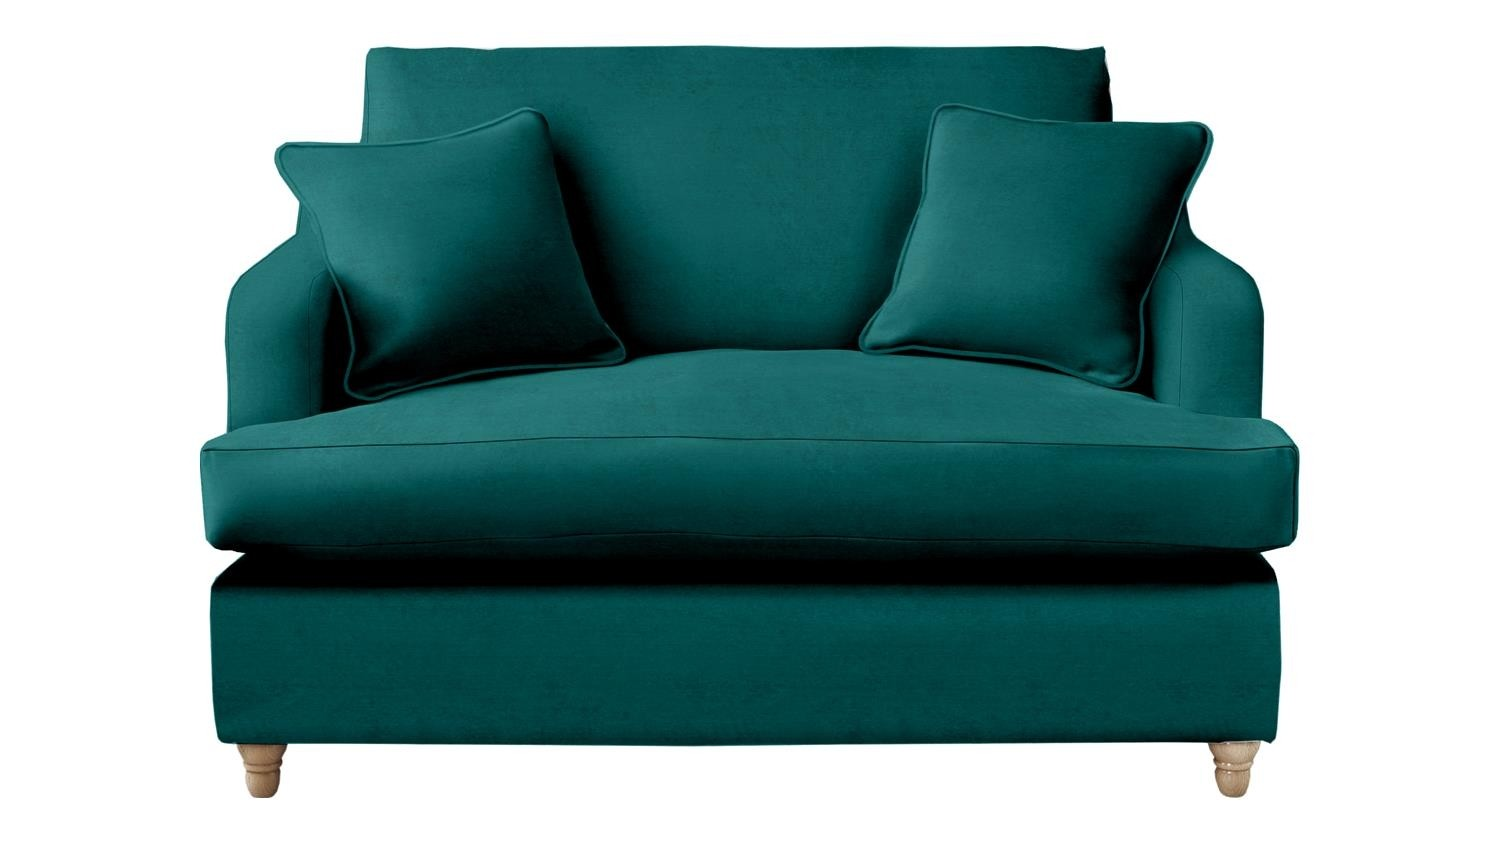 The Atworth Love Seat Sofa Bed